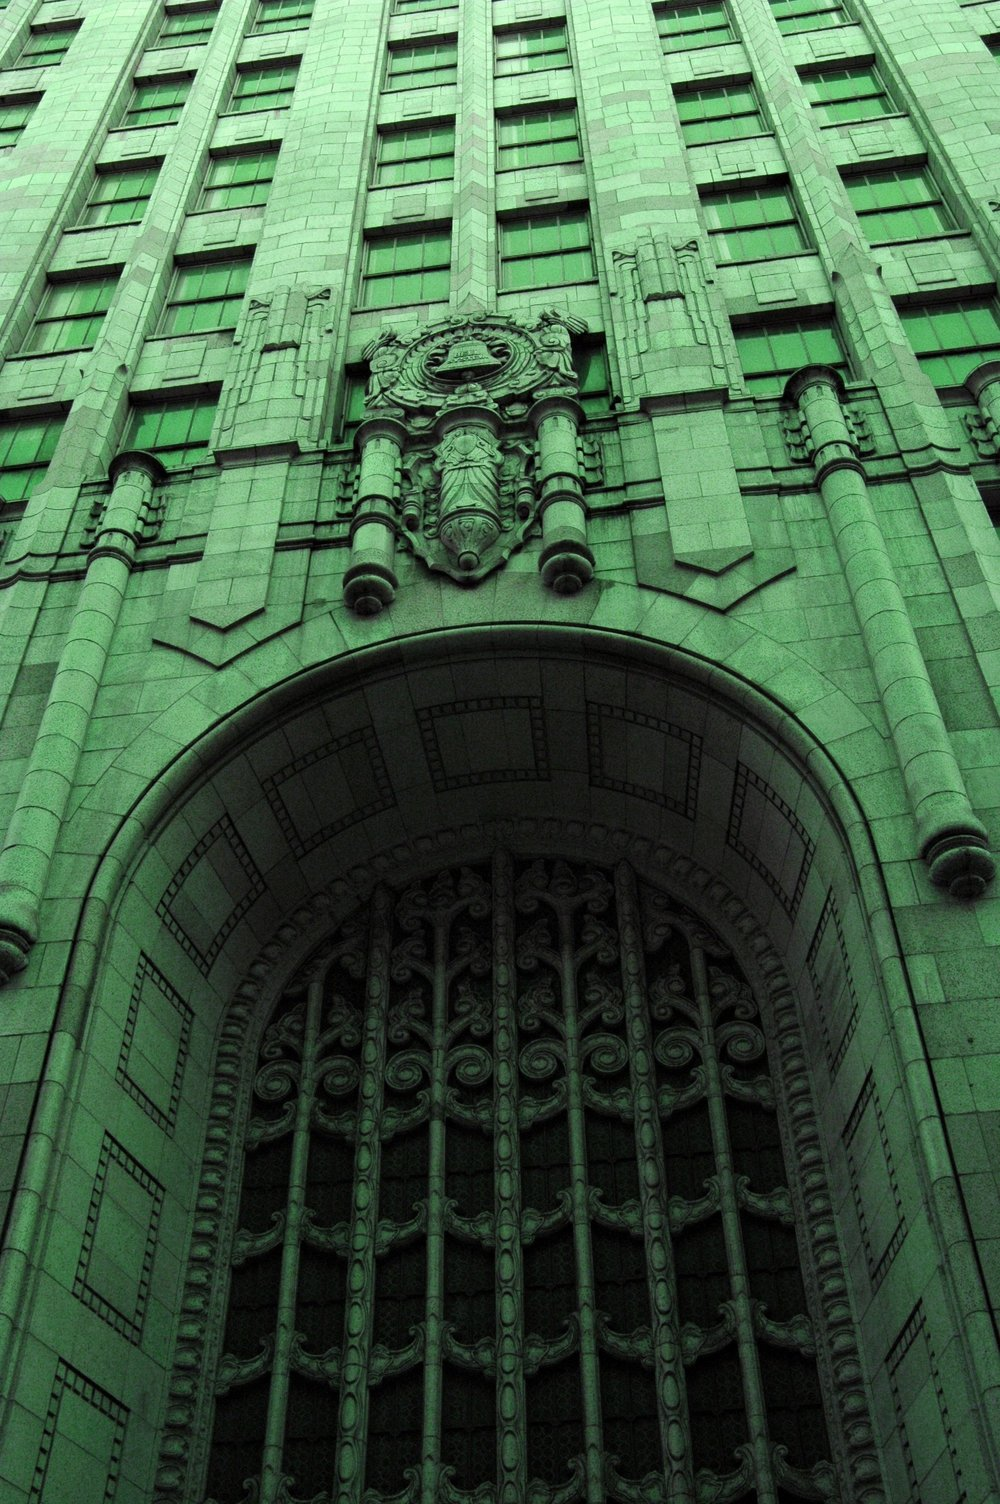 """"""" Going Green, The Ma Bell Building, art deco archway and details """" by  Wonderland  is licensed under  CC BY 2.0 ."""